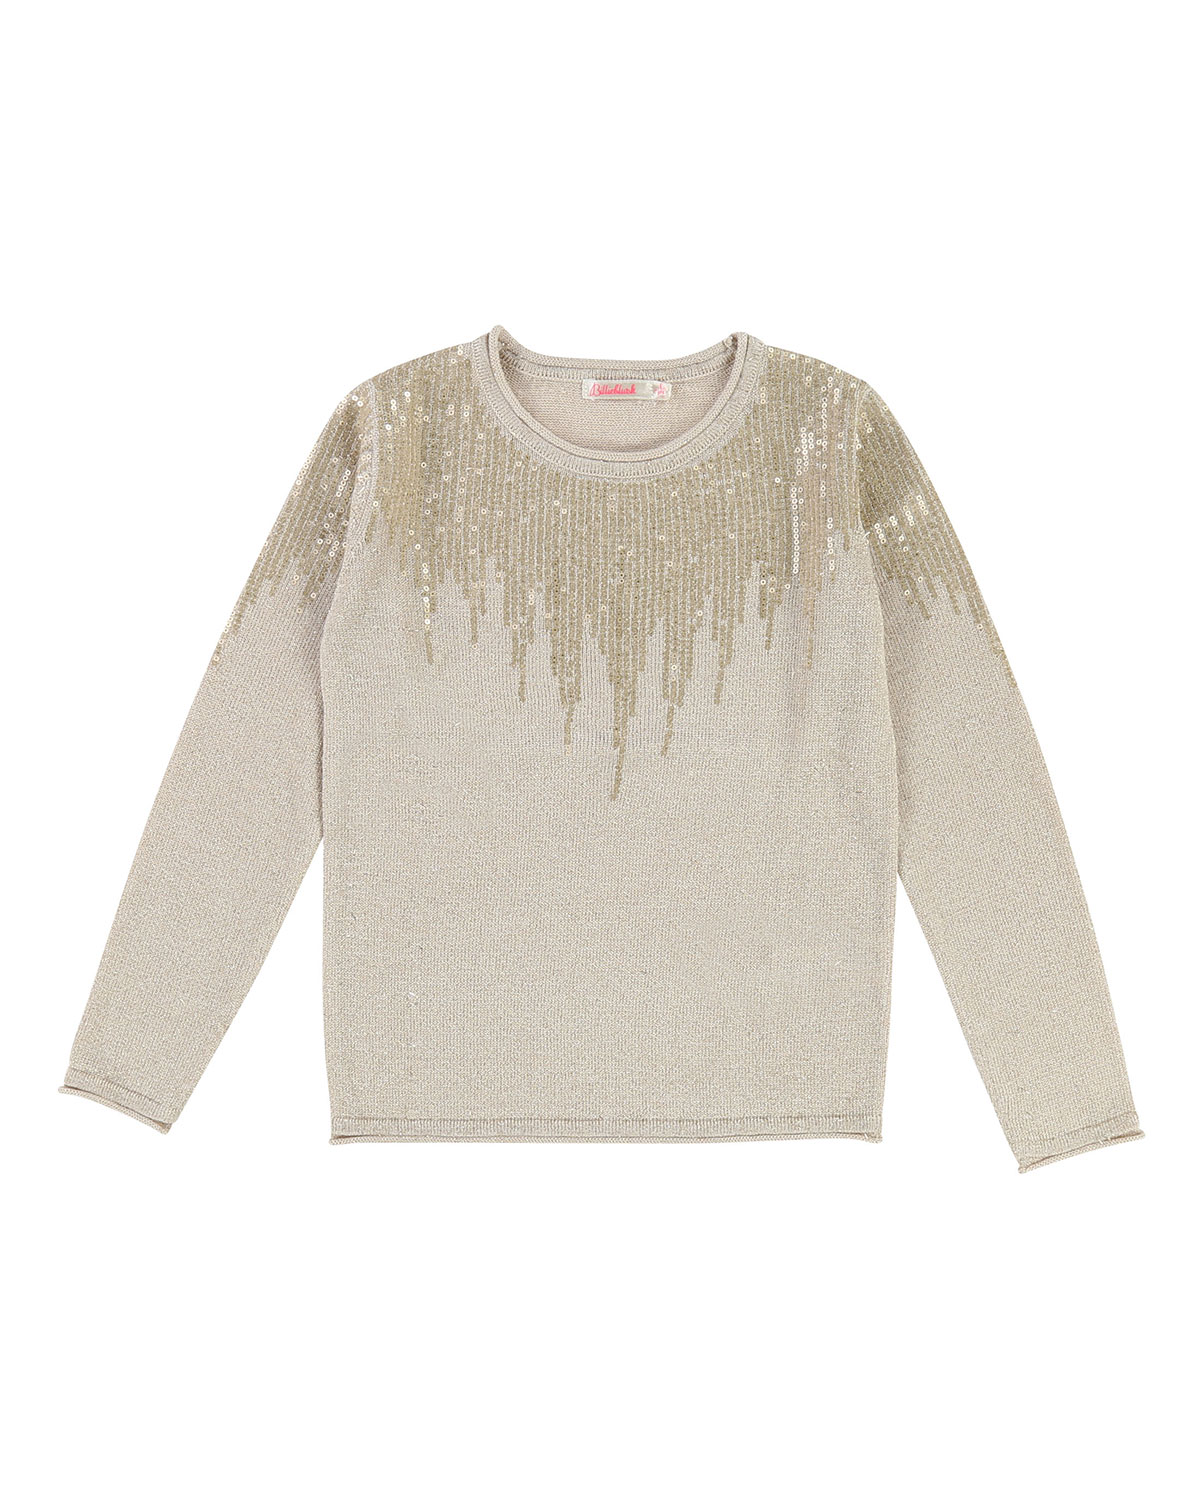 Long-Sleeve Lurex Knit Sequin Top, Size 4-8